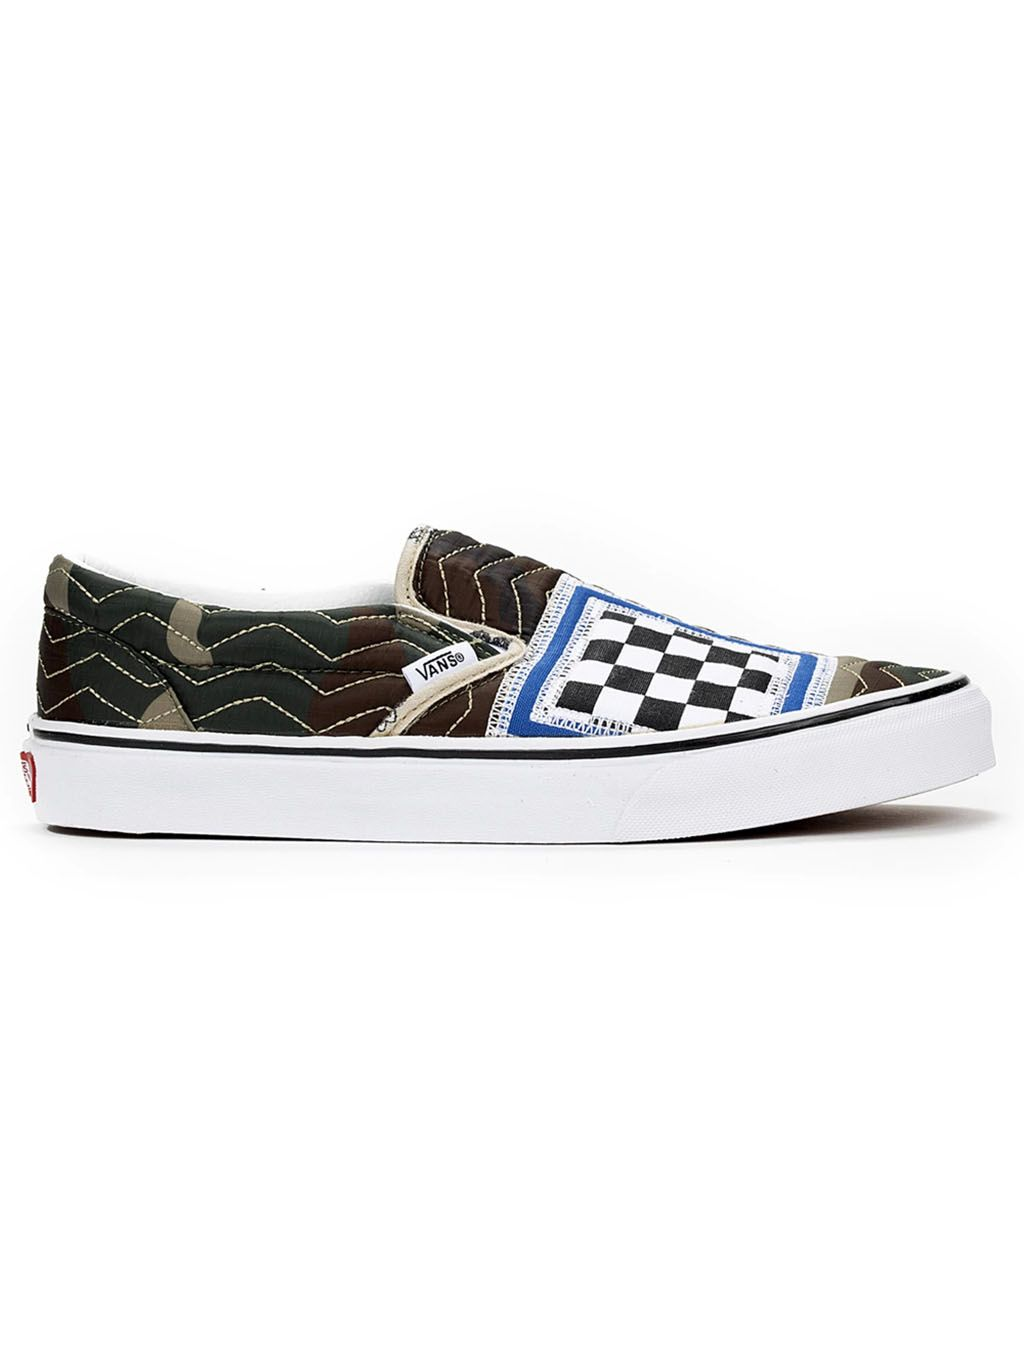 Multi Classic Mixed Quilting Slip On Shoes